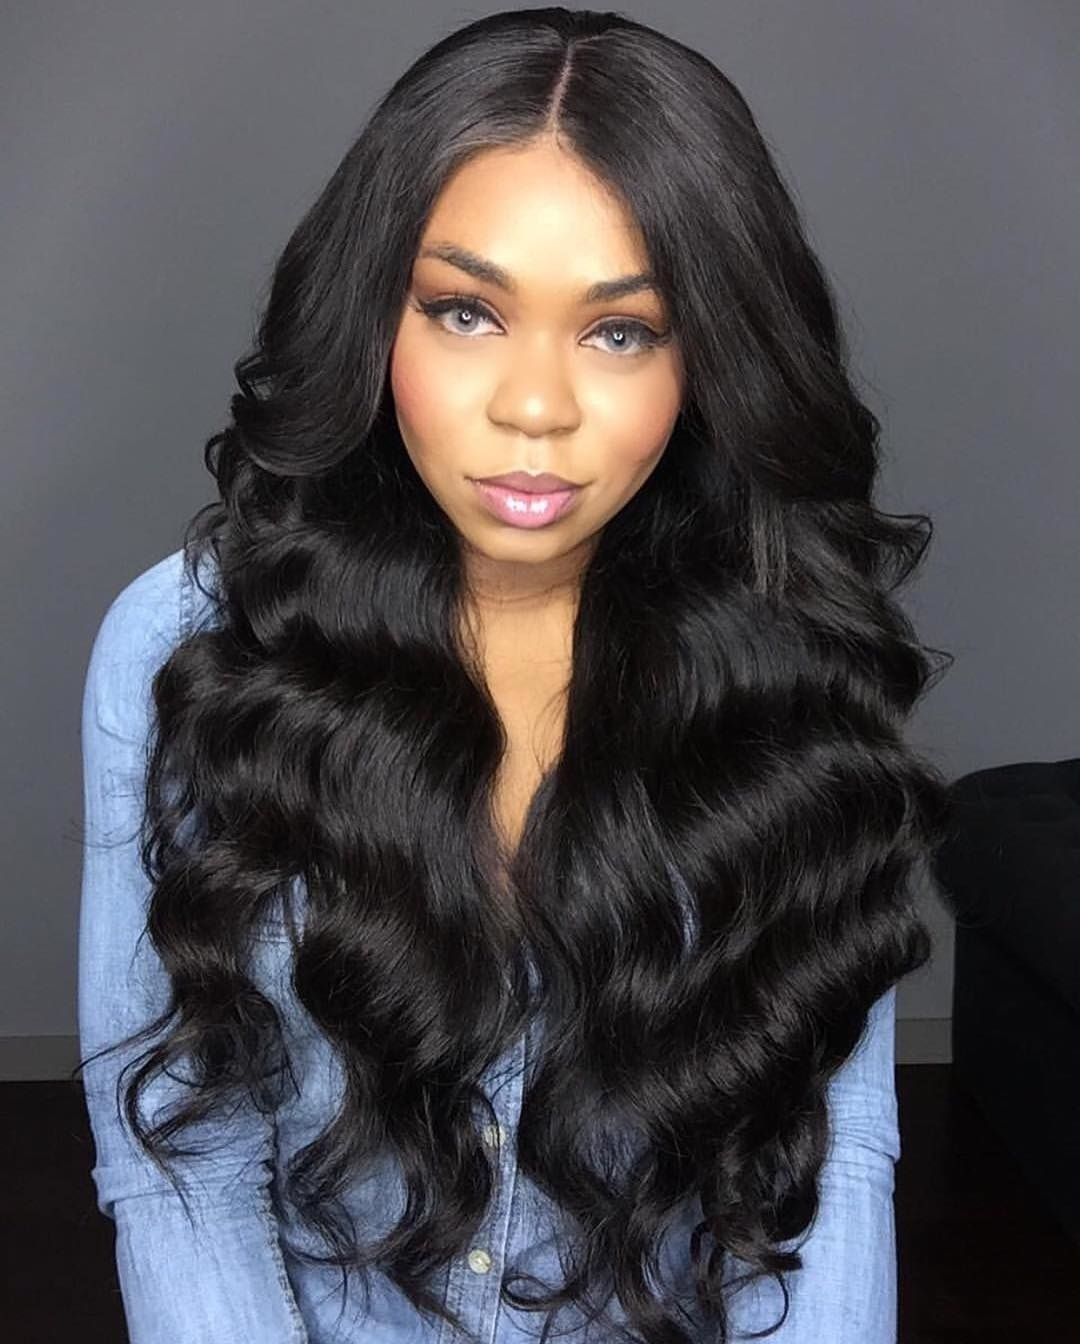 Pin By Raymooind Taliaferro On Gorgeous In 2019 | Body Wave throughout Body Wave Hairstyles 2018 Black